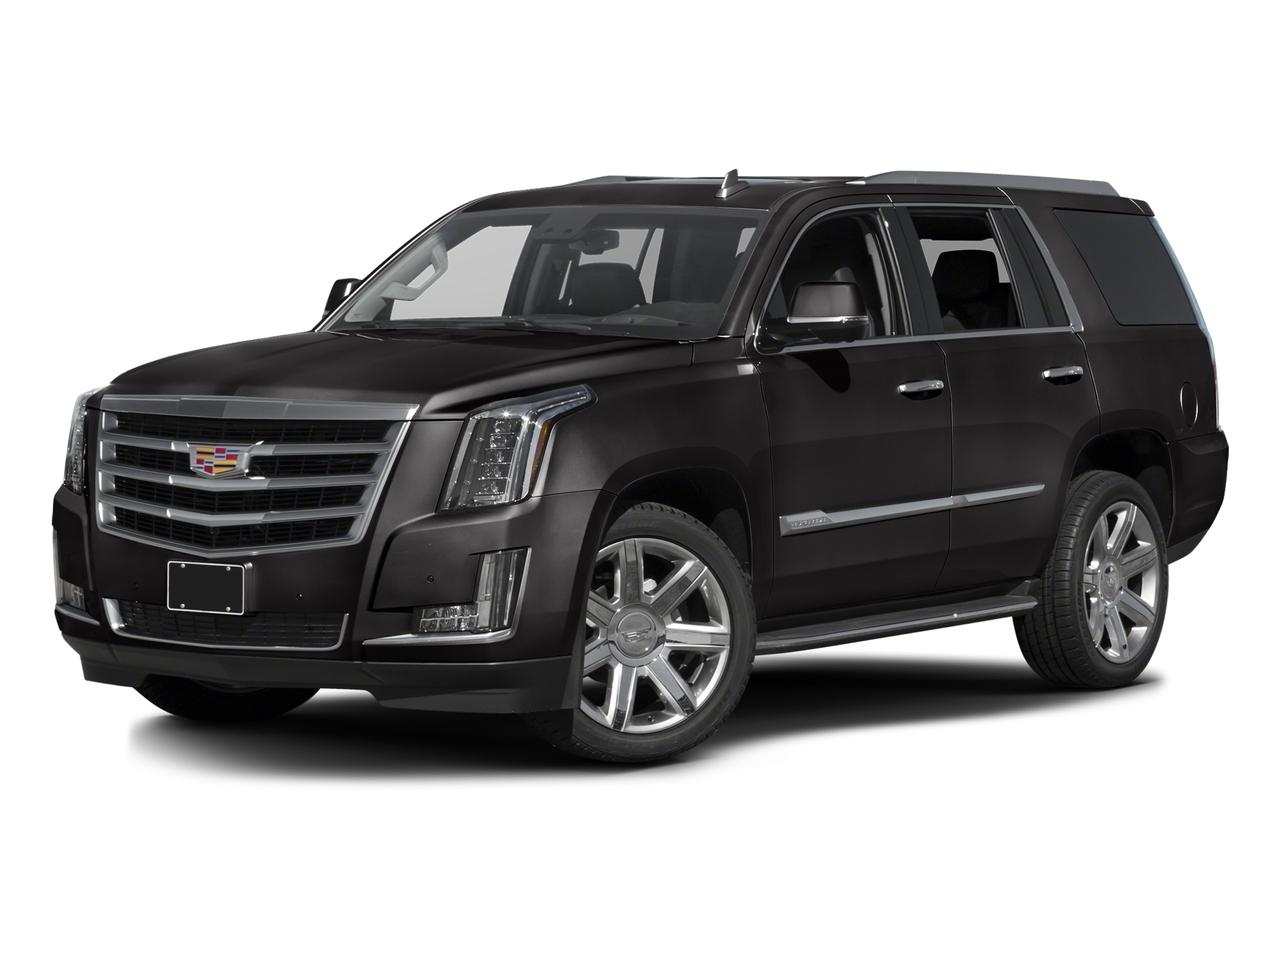 2016 Cadillac Escalade Vehicle Photo in Safford, AZ 85546